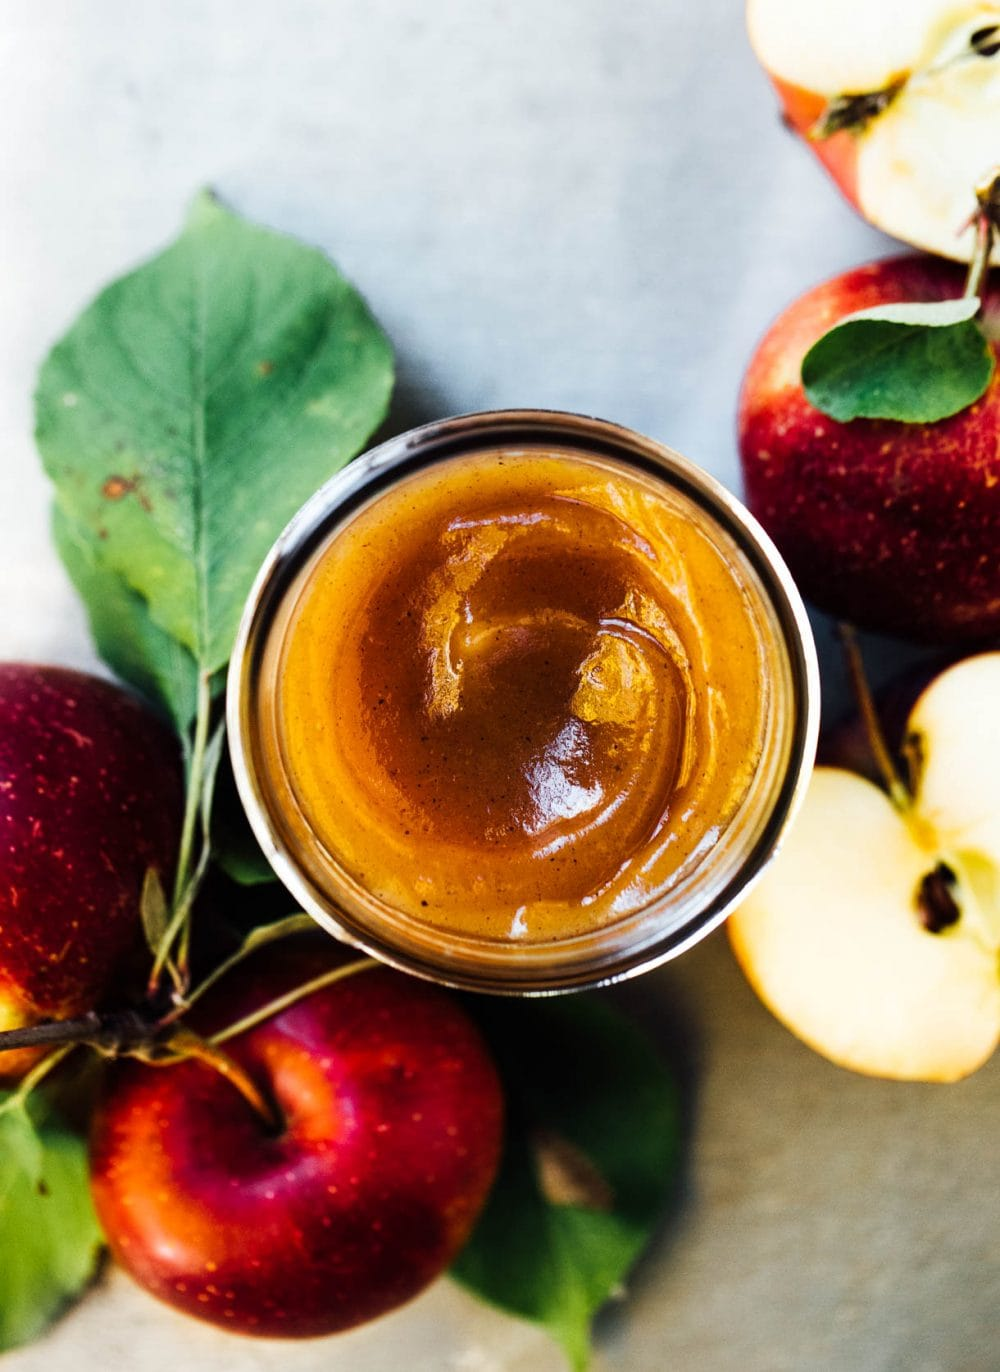 apple butter in a glass jar with top off, apples surrounding jar